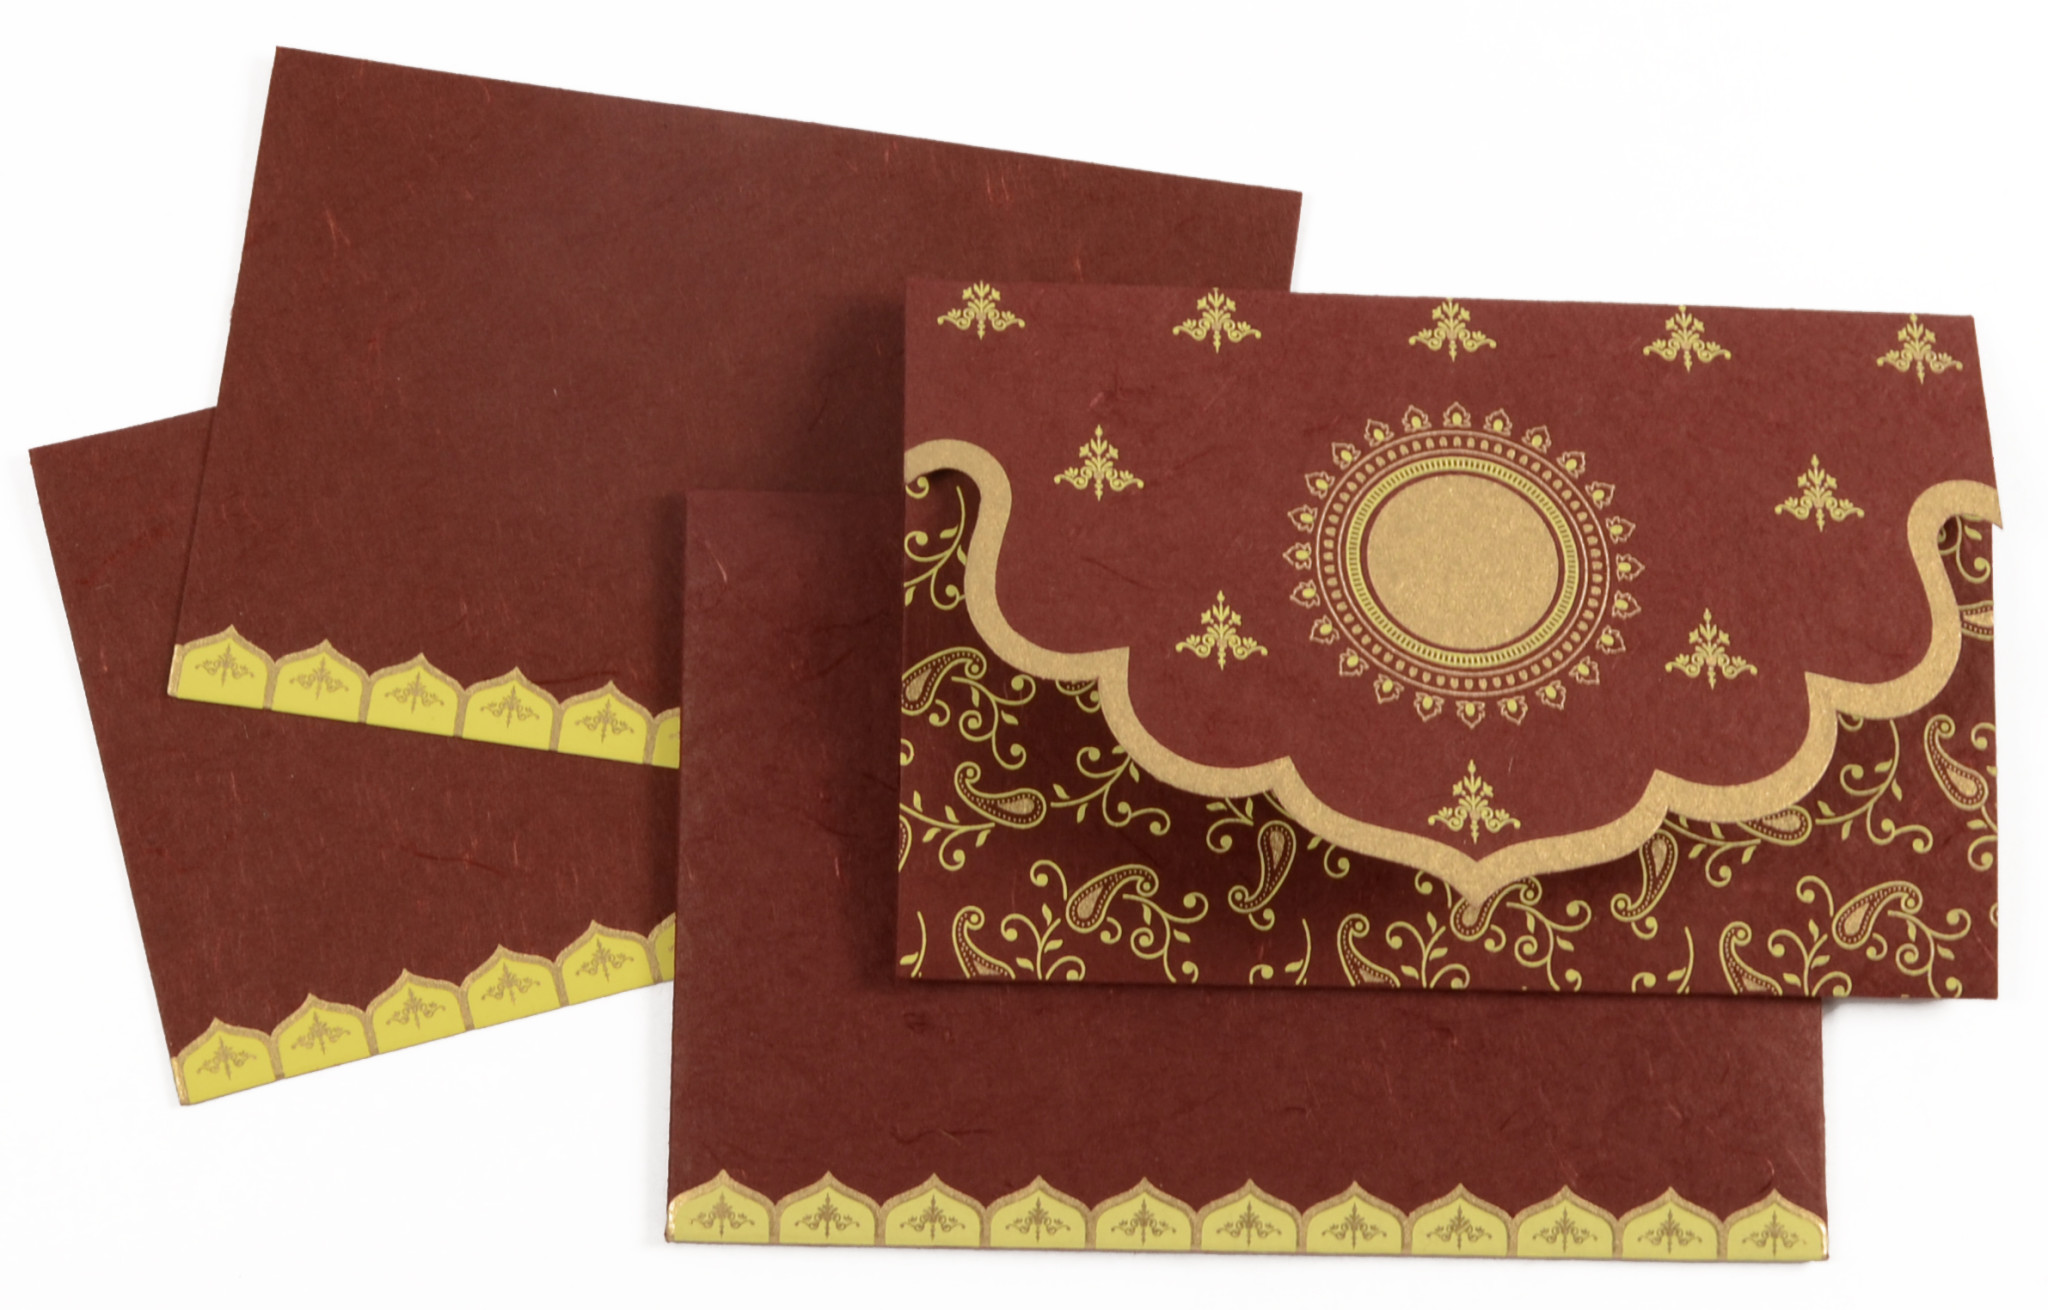 Pakistani Wedding Invitation Cards Designs – Hindu Wedding Invitation Cards Designs